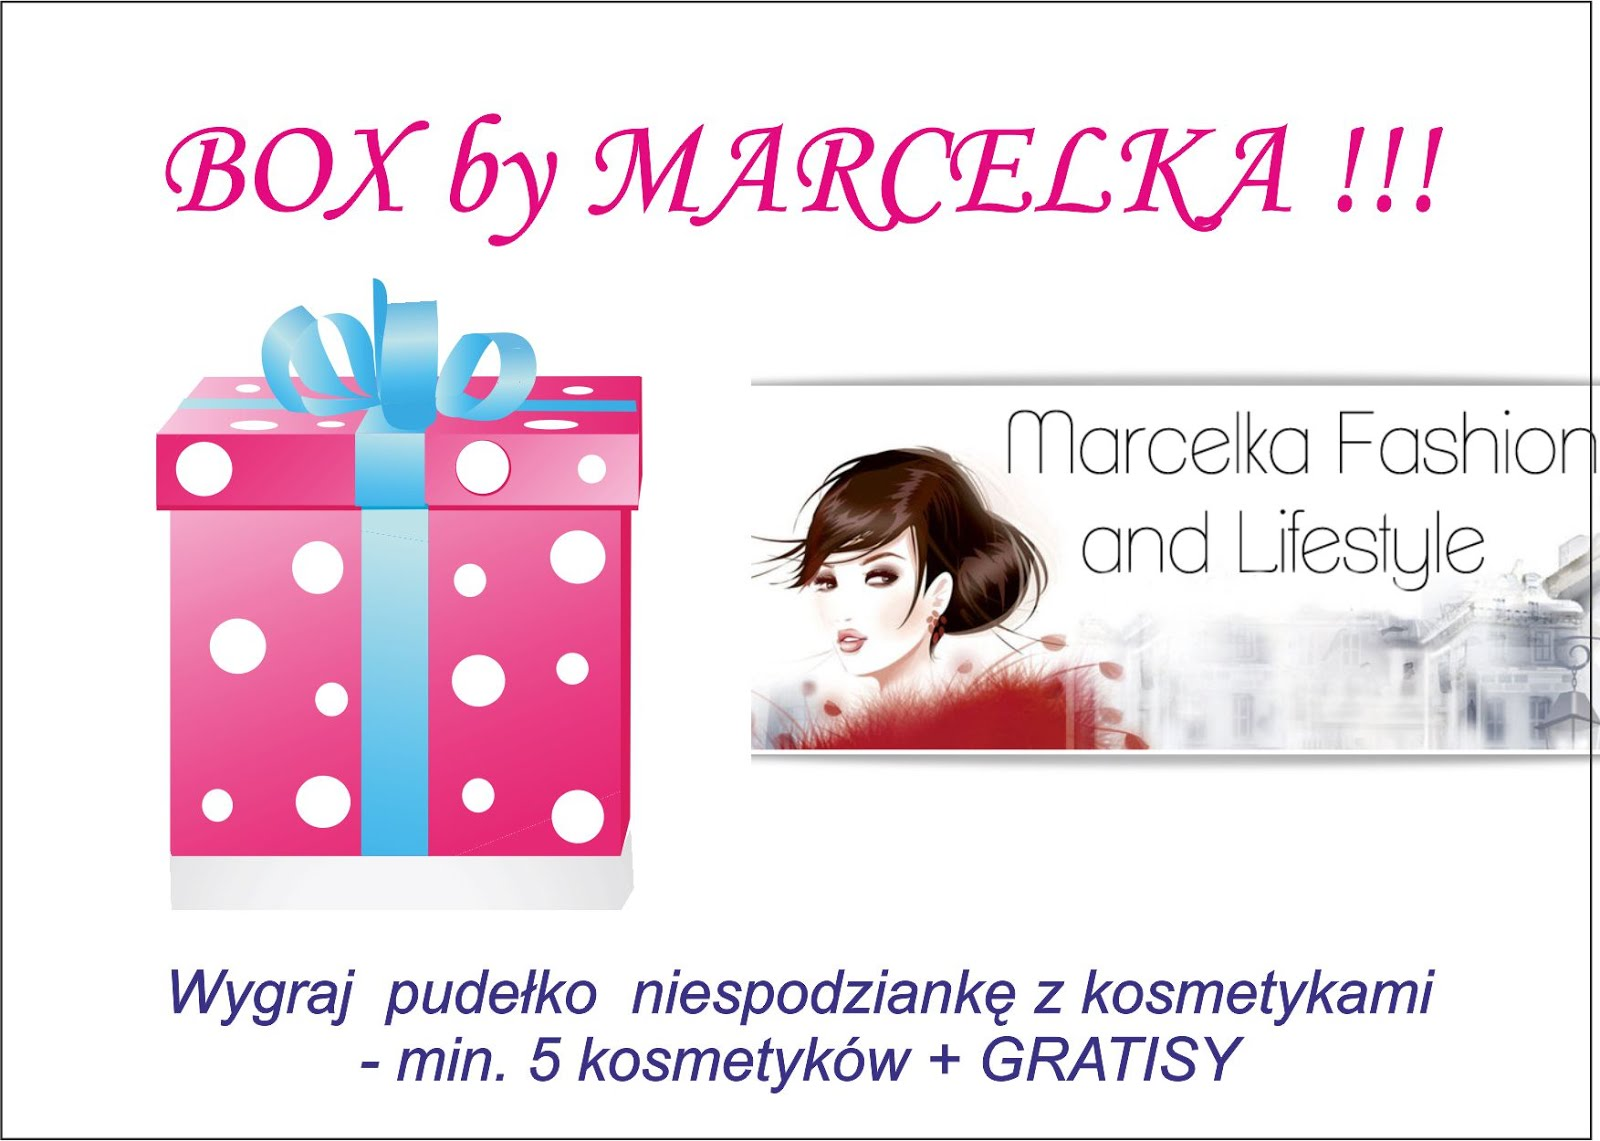 BOX by MARCELKA